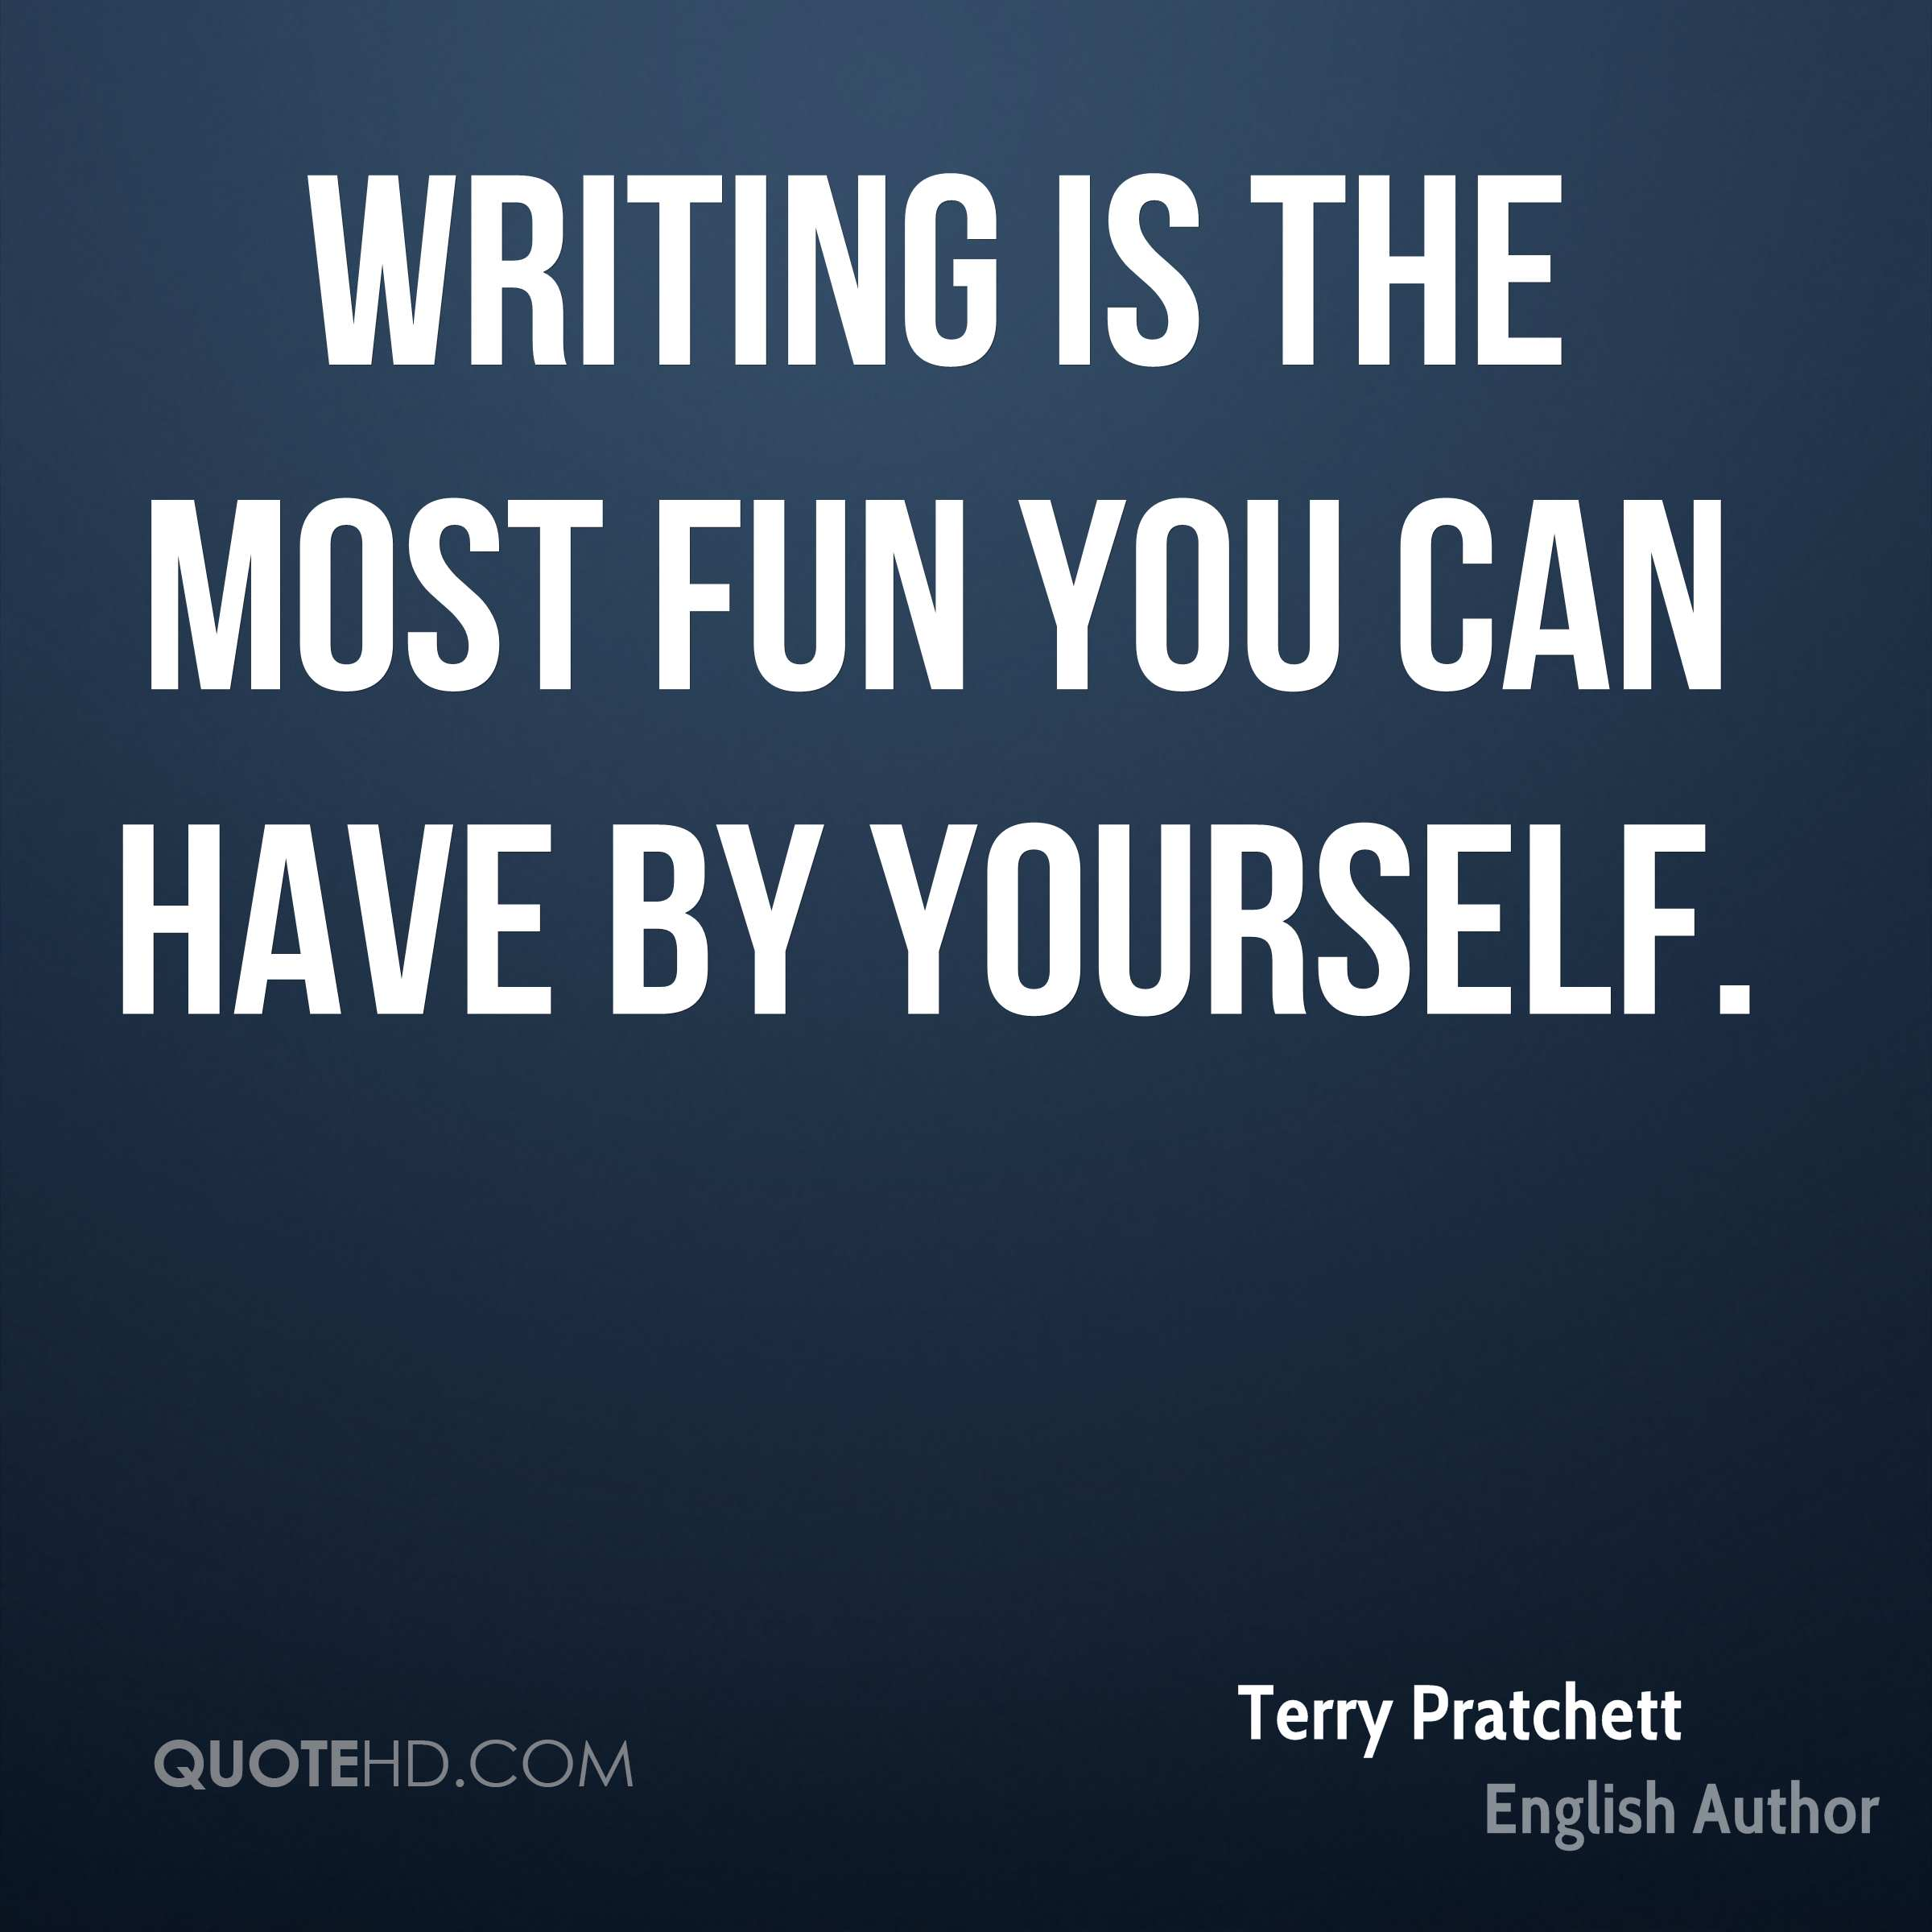 Writing is the most fun you can have by yourself.